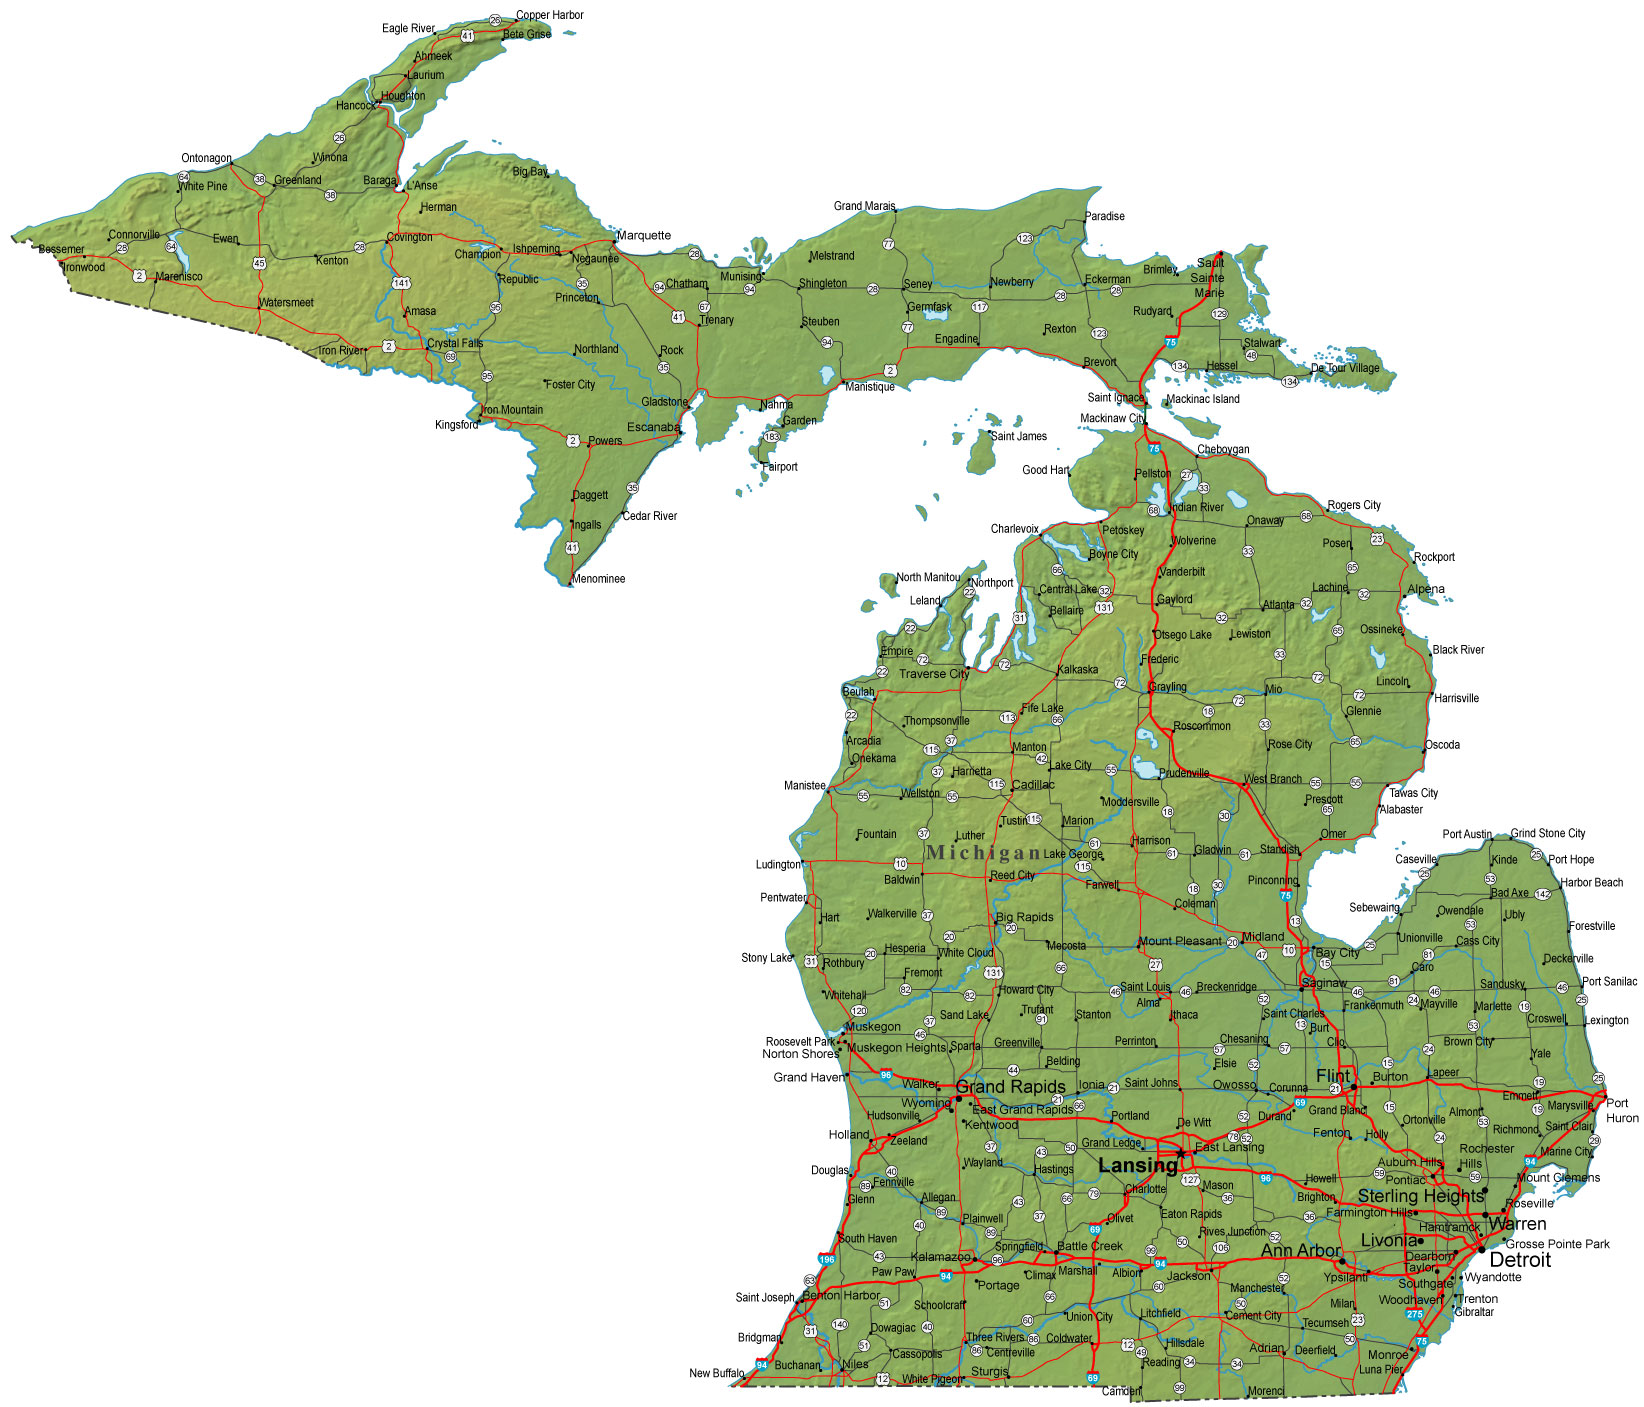 Map Of Michigan Michigan Maps - Mapsof.net